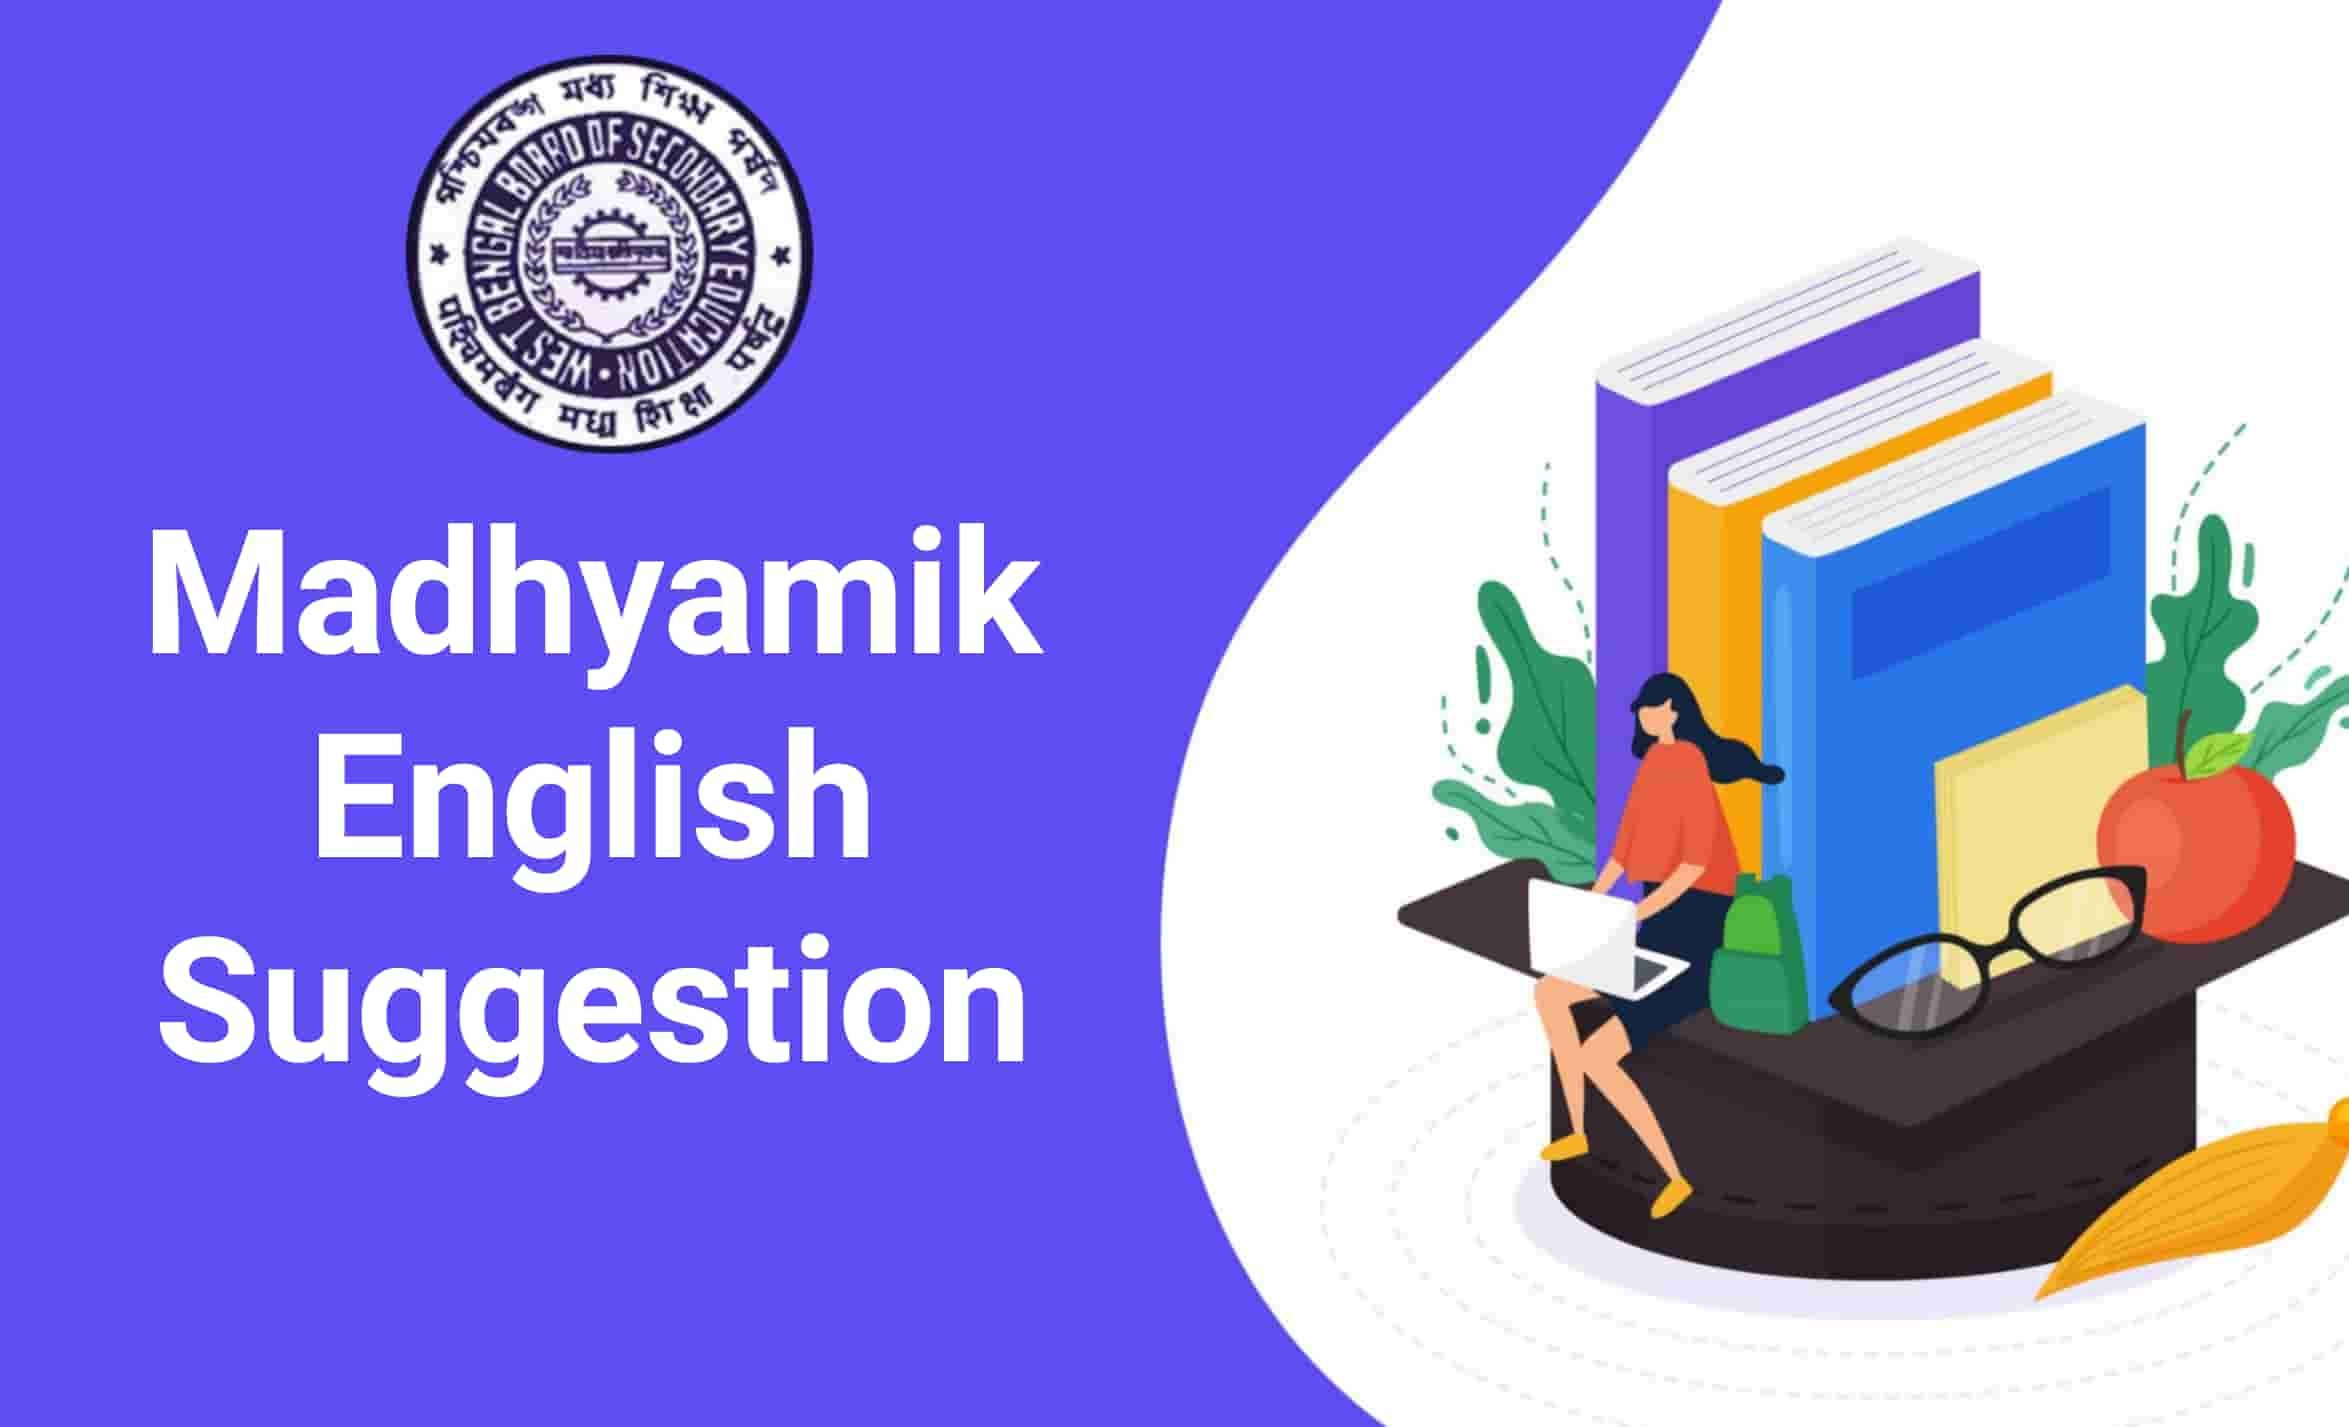 Madhyamik English Suggestion 2021 PDF